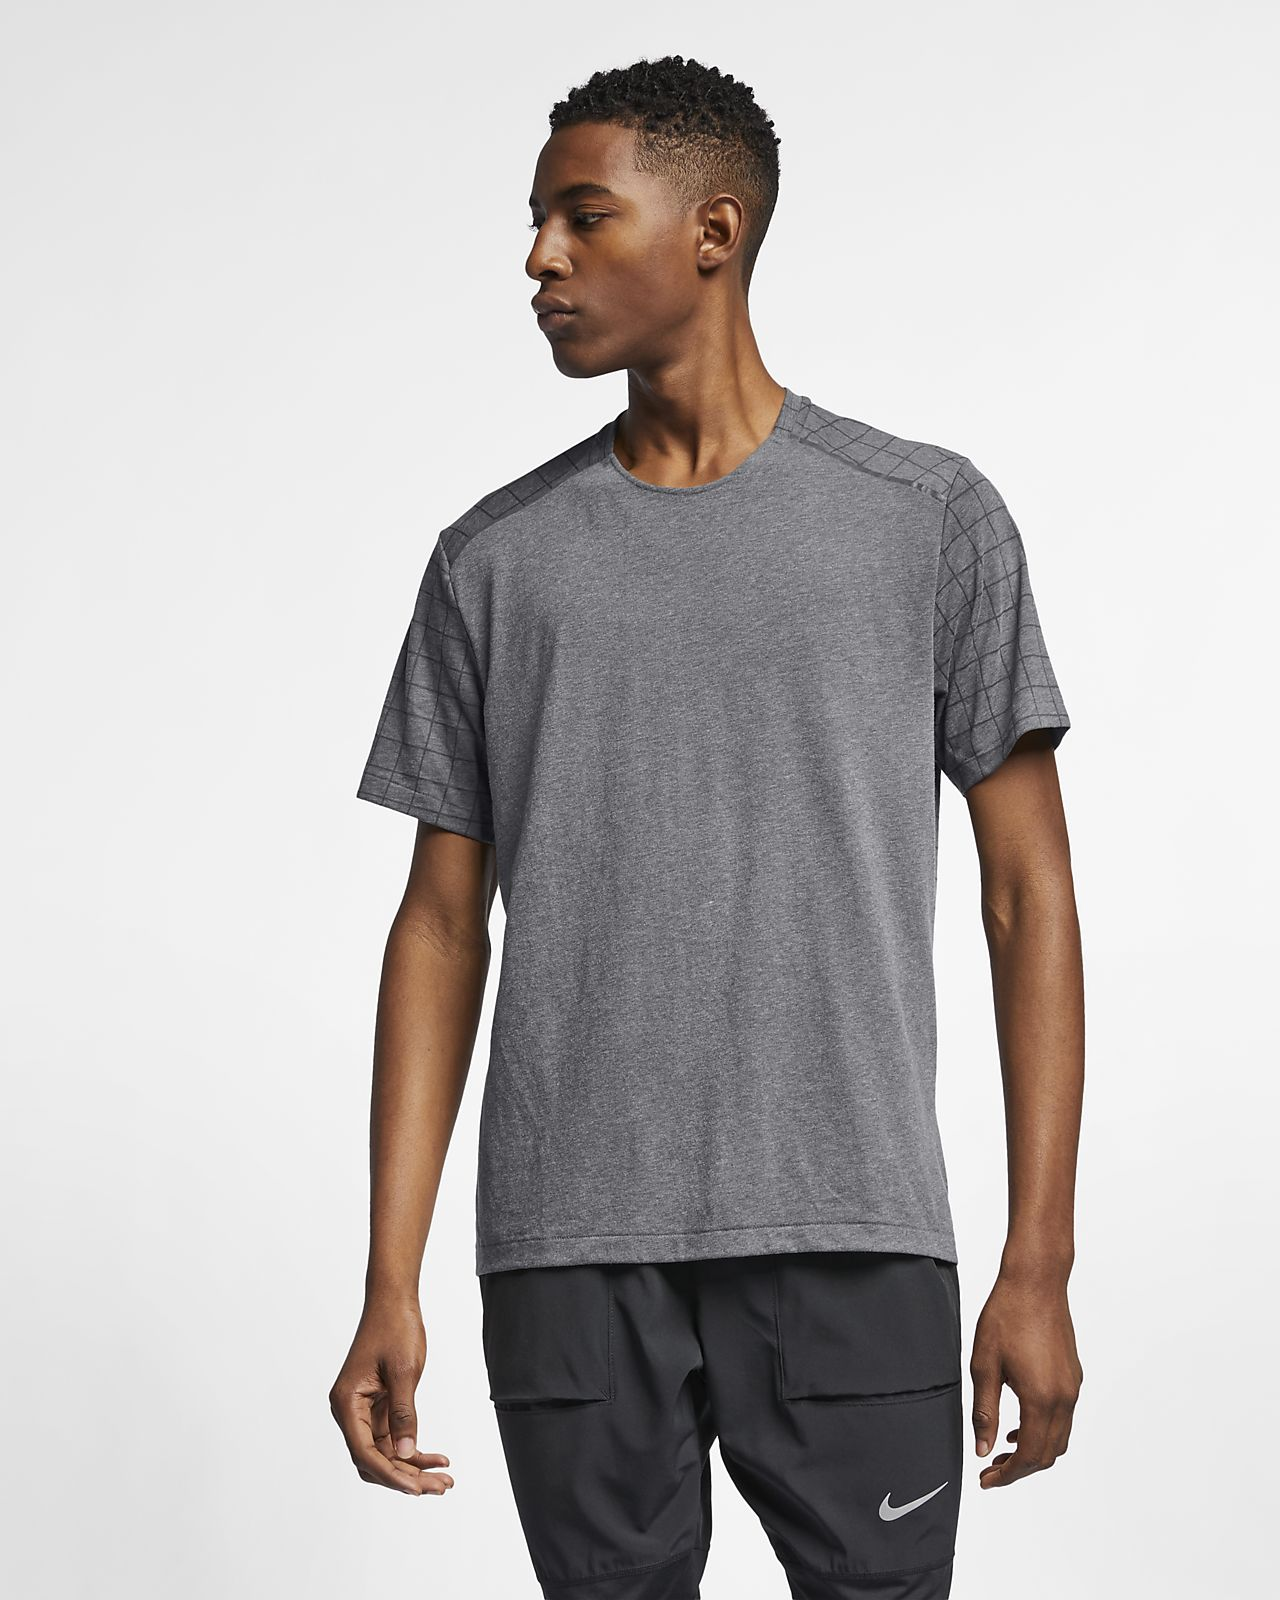 Nike Tech Men's Running Top